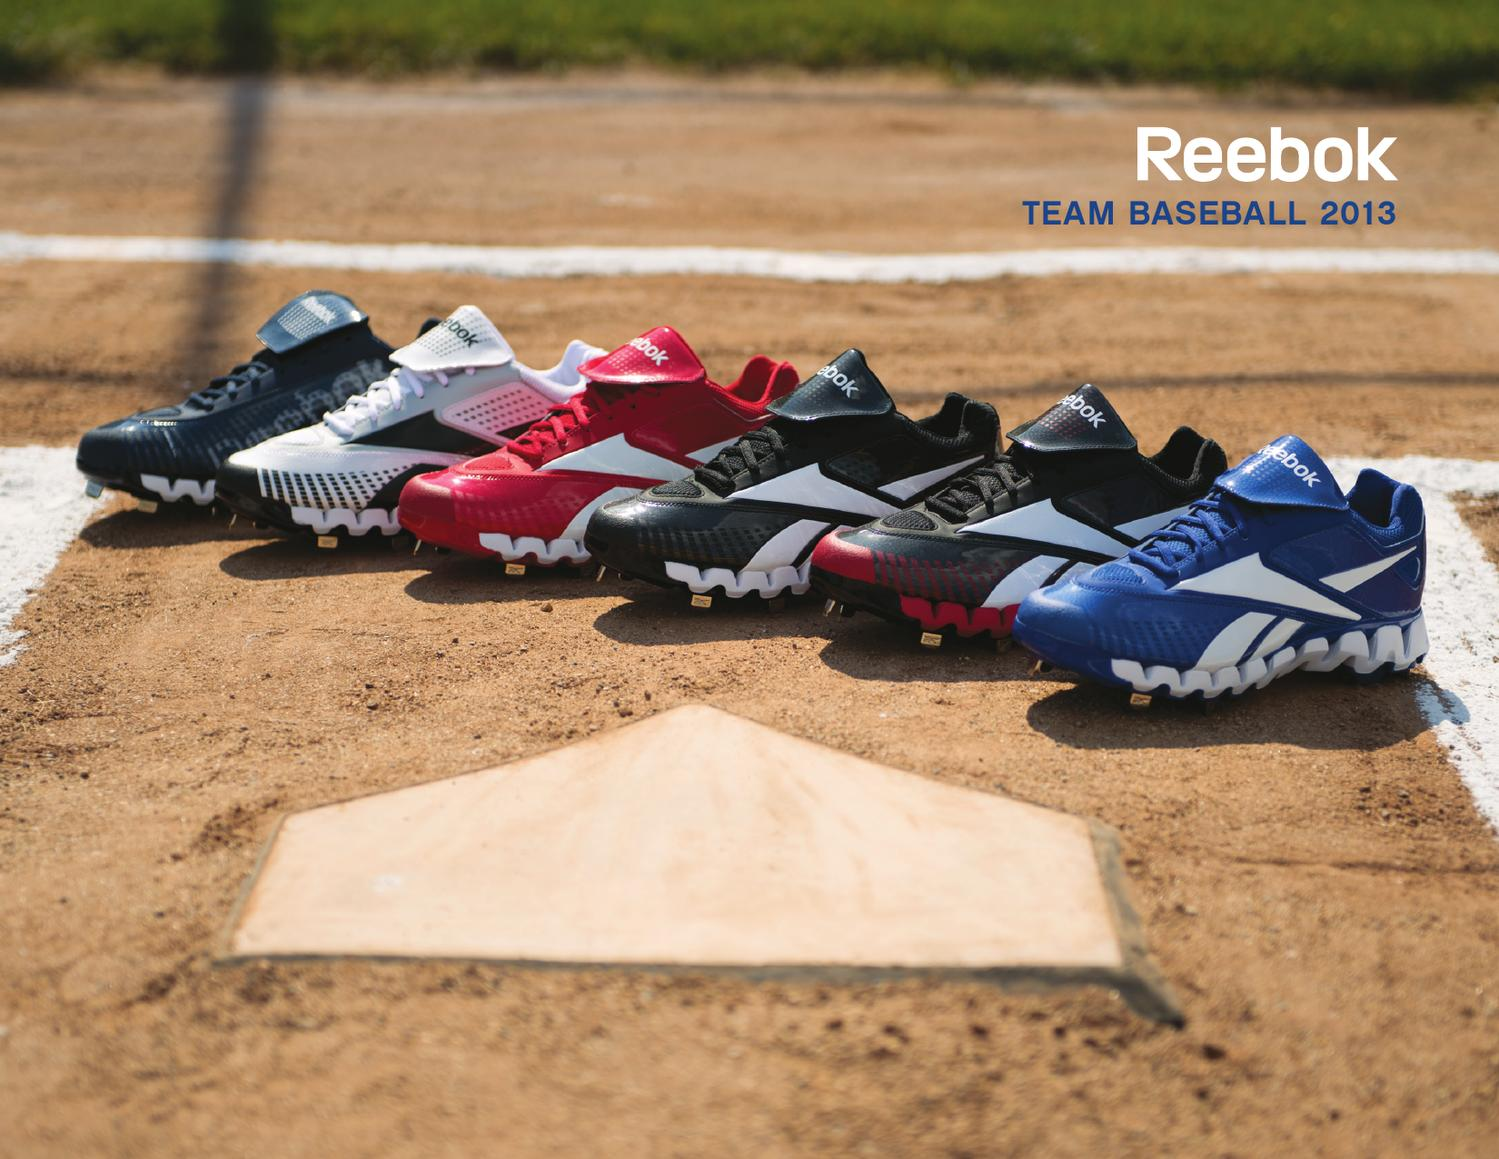 Reebok Baseball   Softball Uniforms 2013 by Uniforms Express - issuu de16fa93c